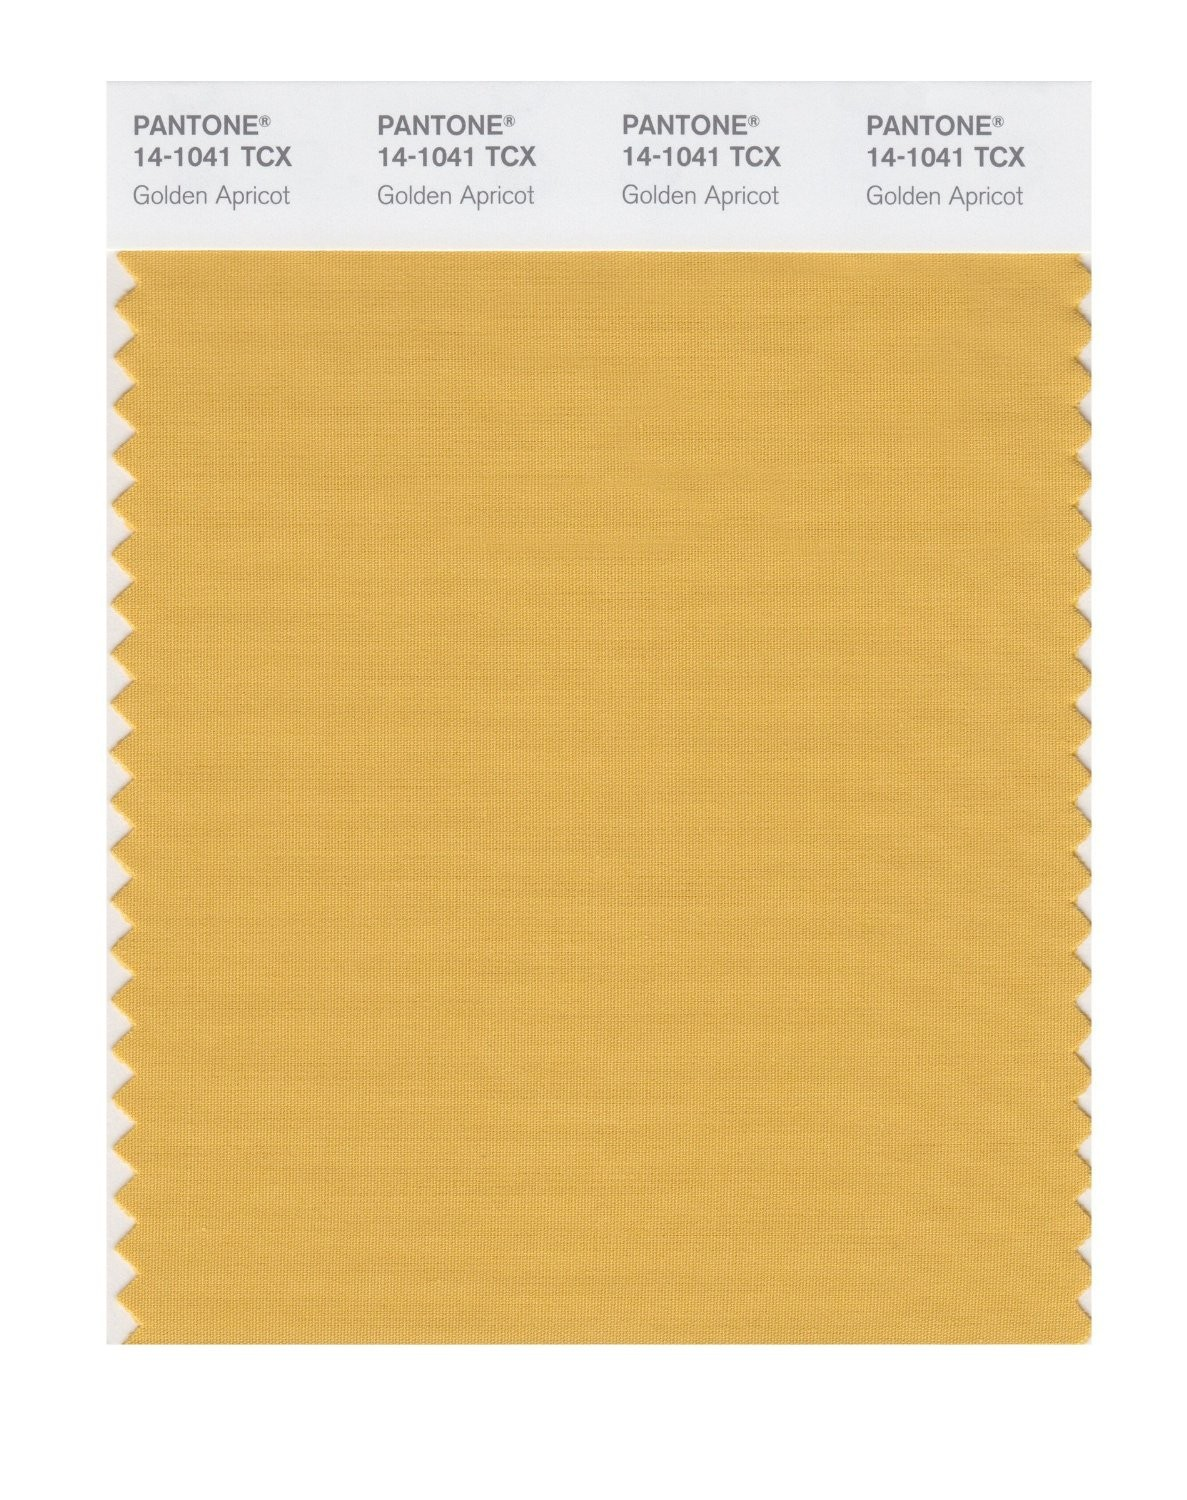 Pantone 14-1041 TCX Swatch Card Golden Apricot